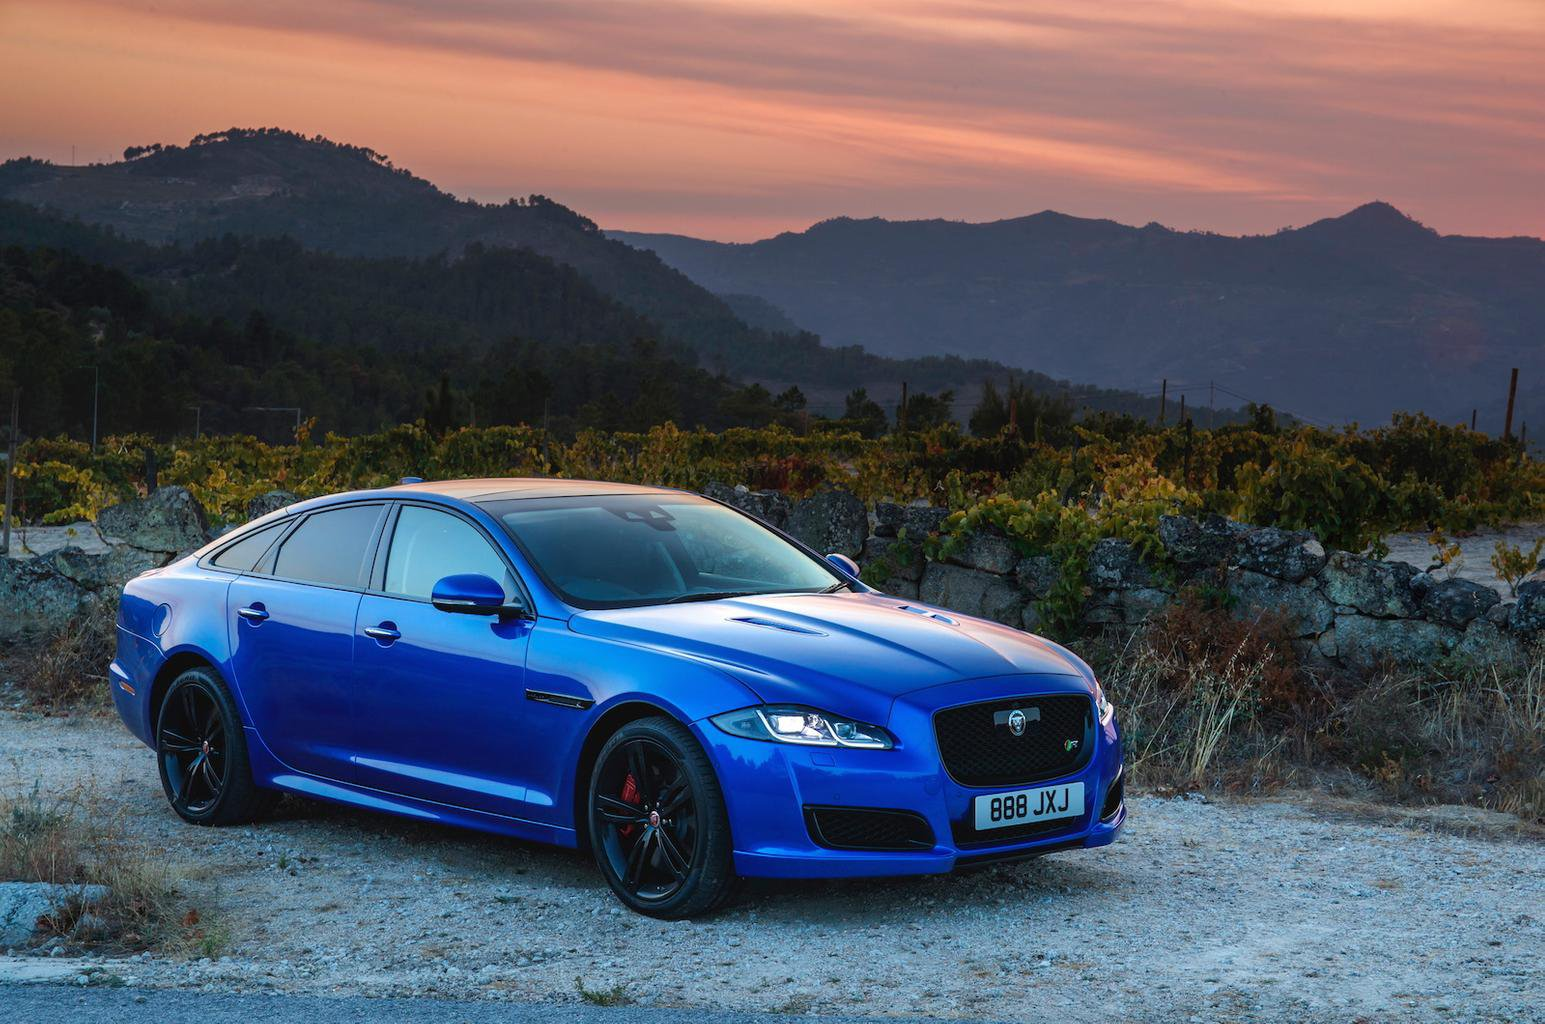 2017 Jaguar XJR575 review - verdict